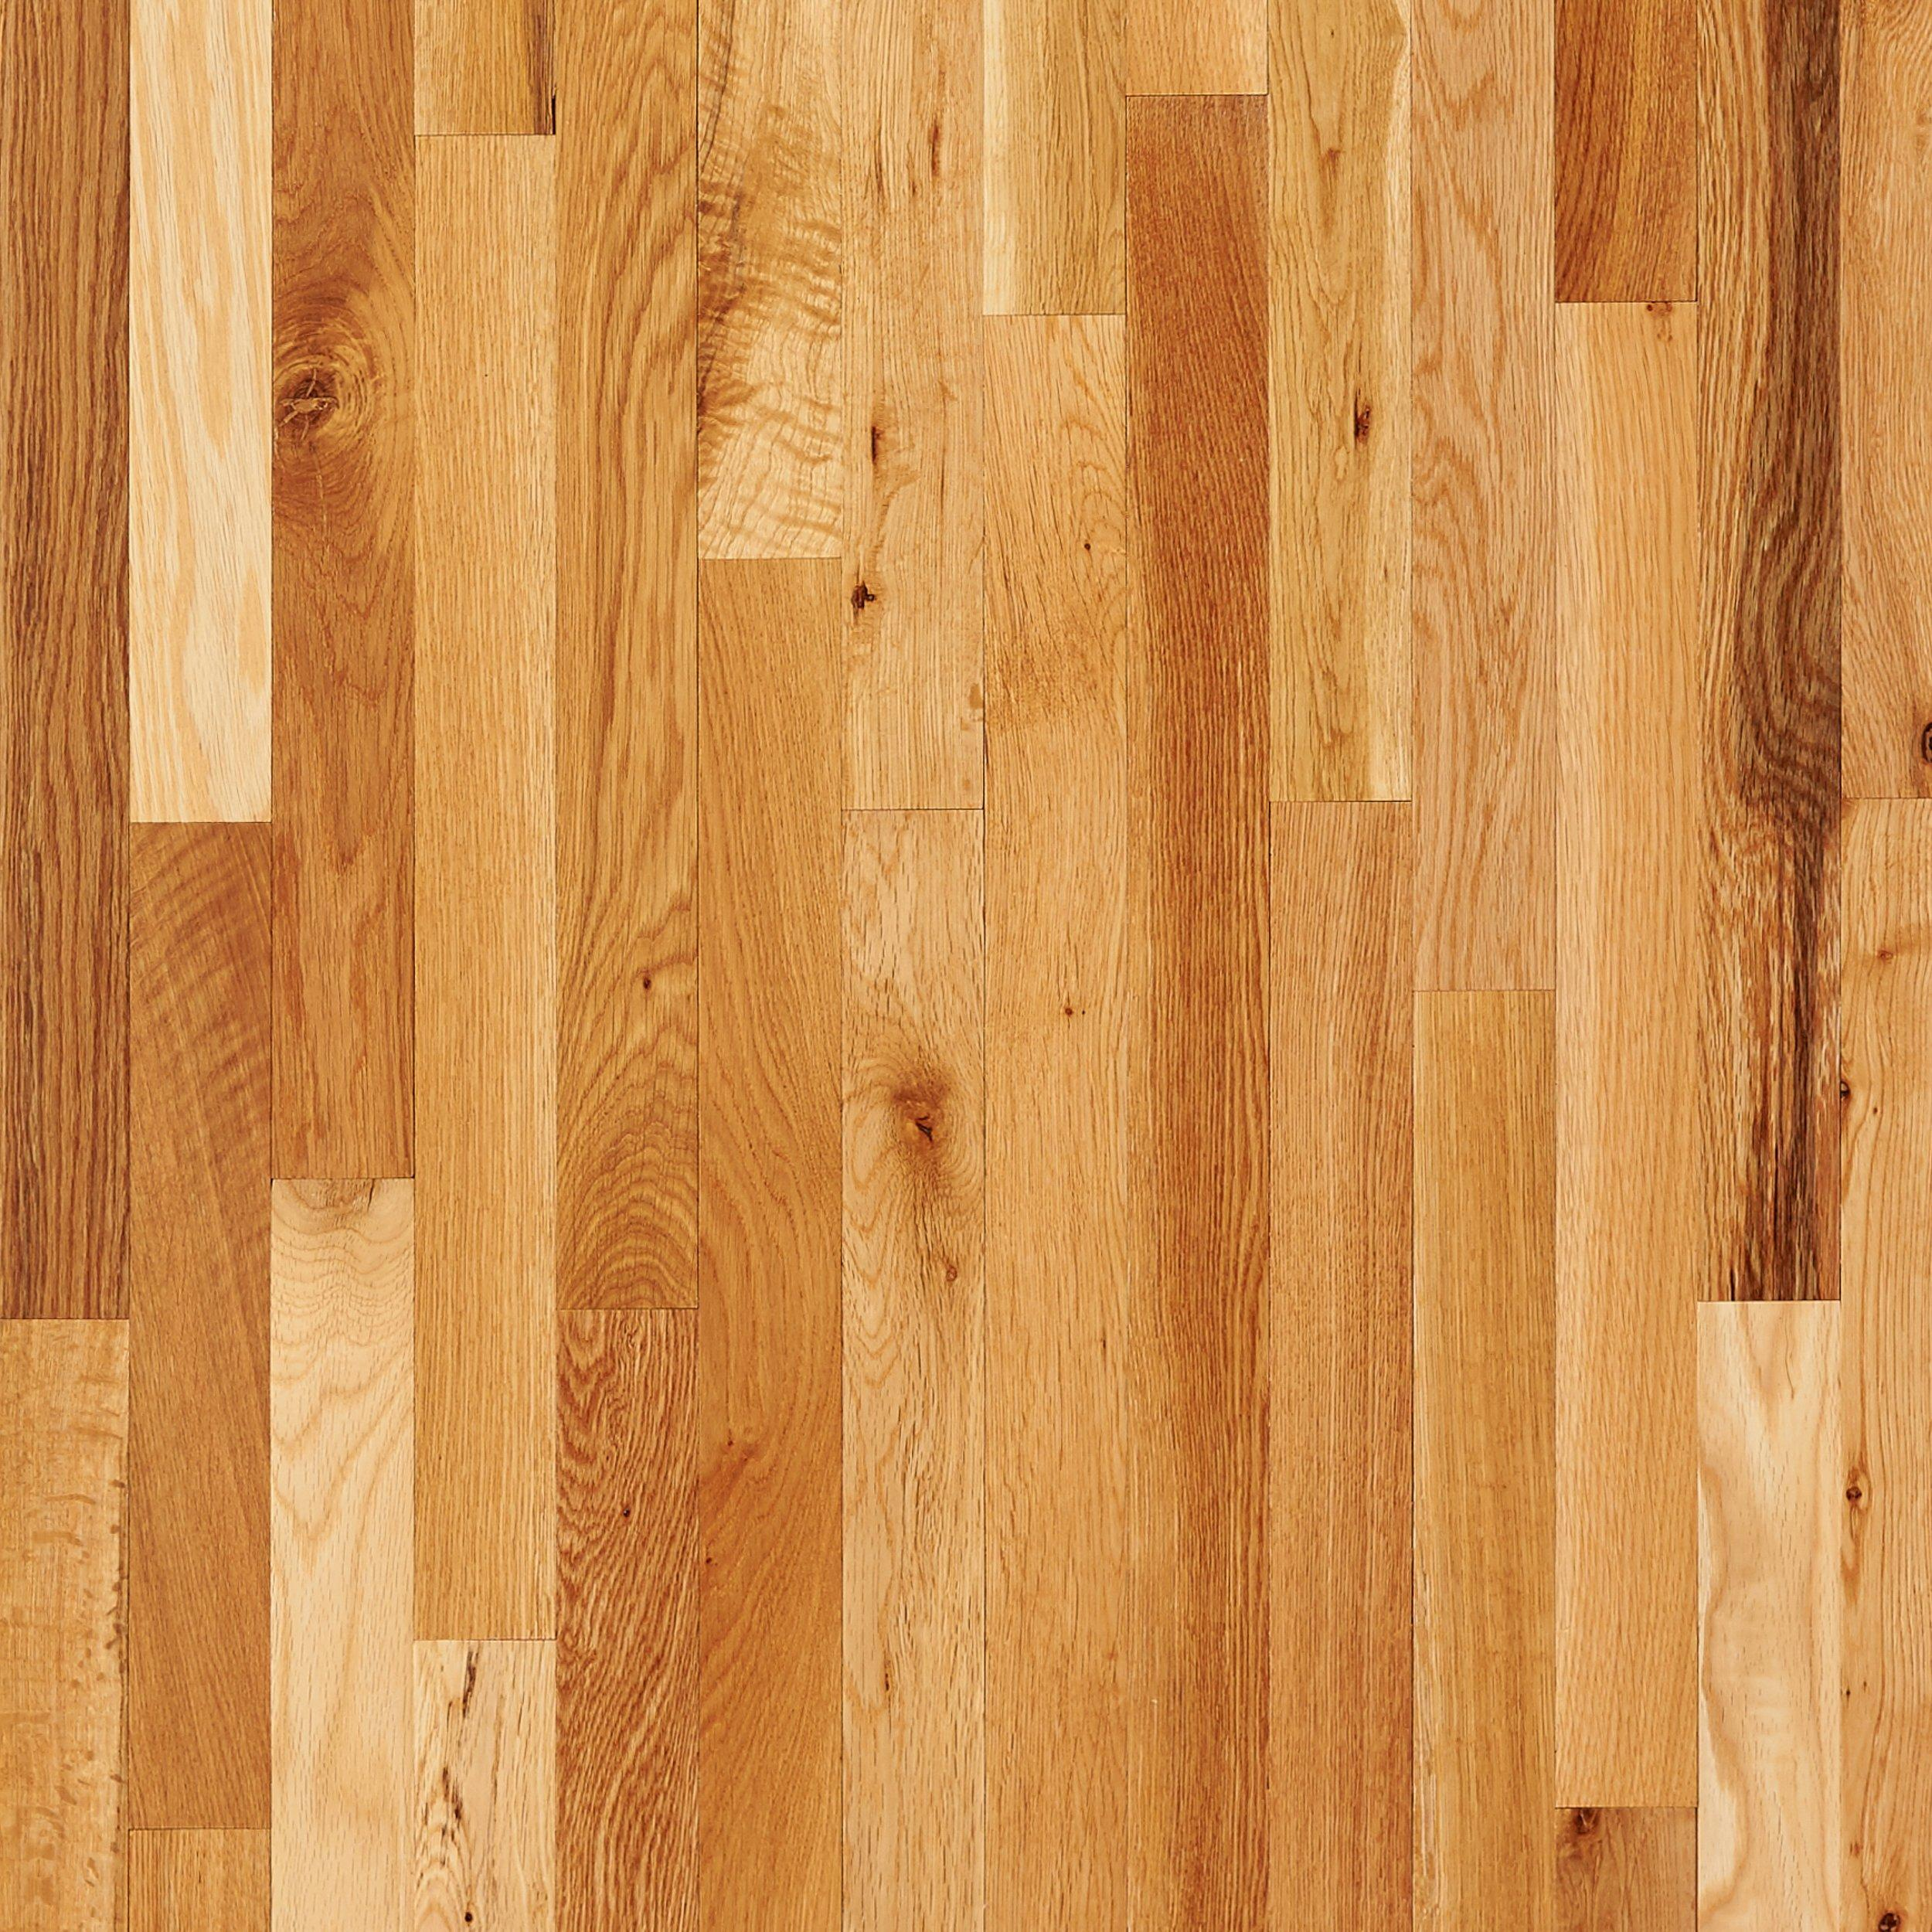 hardwood flooring natural oak smooth solid hardwood MRKVLTS